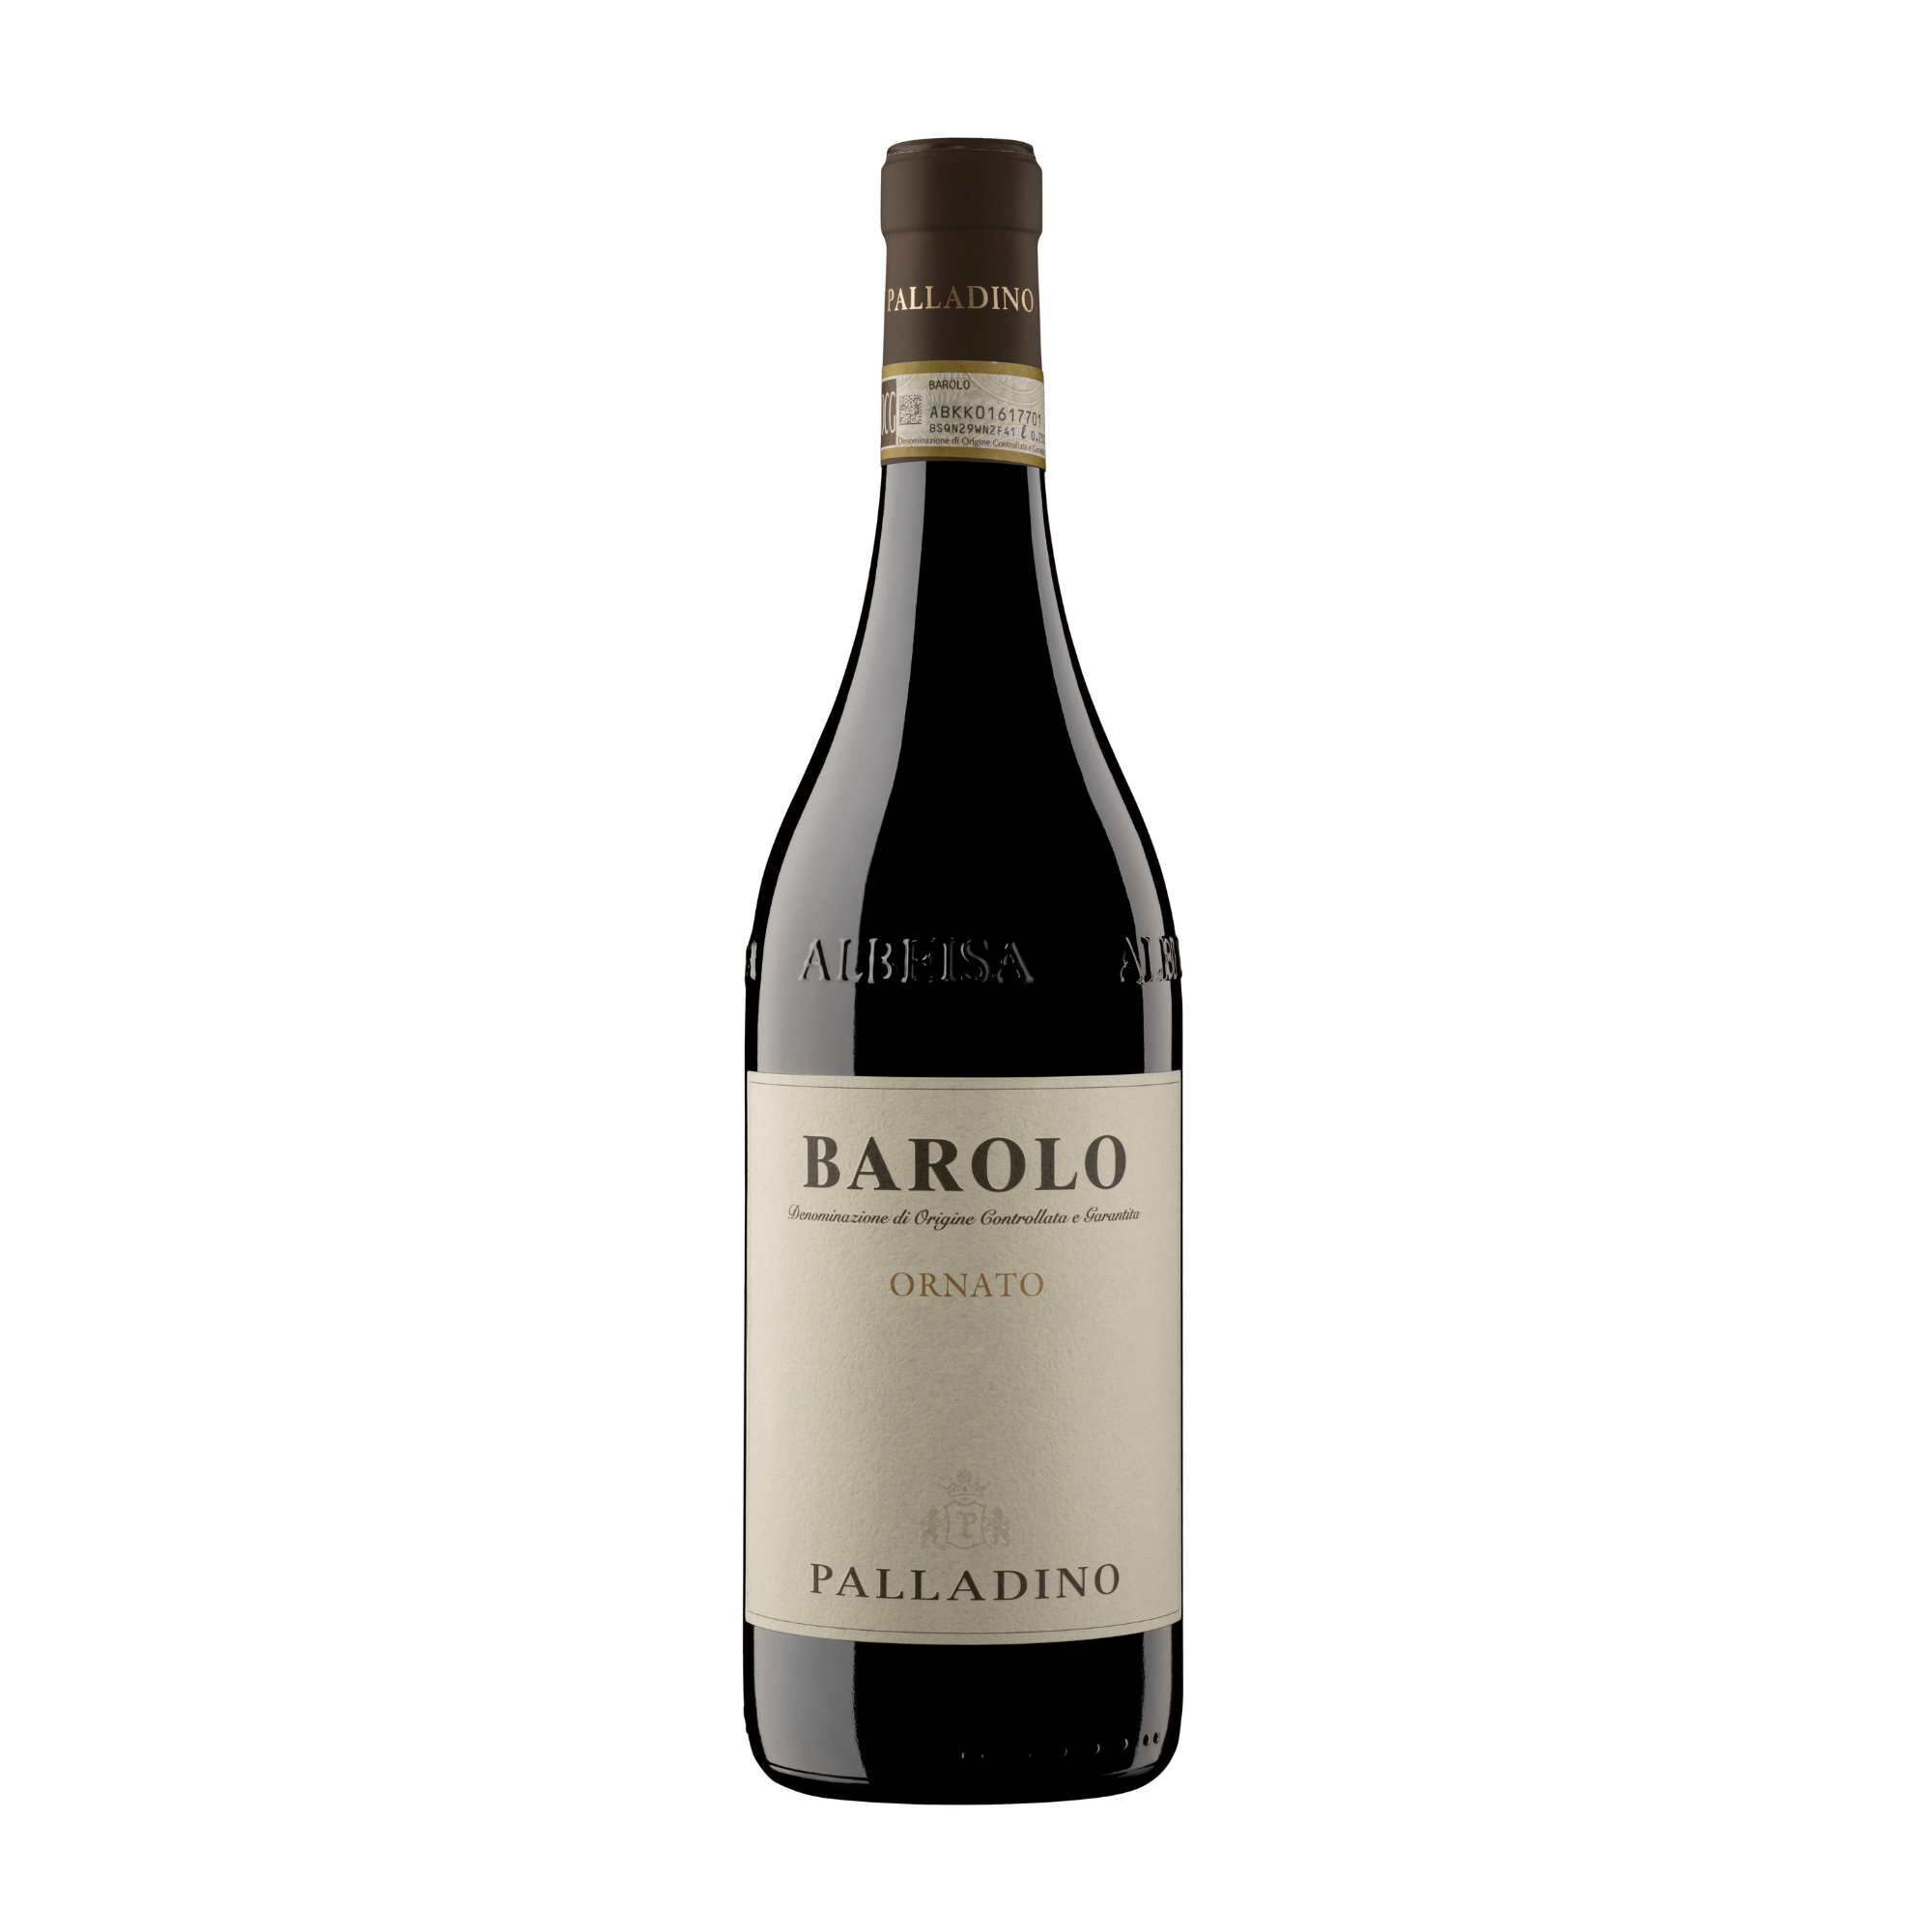 MadeでItaly Barolo DOCG - Red Dry WineからLanghe-Glass Bottle 0.75 - Barolo DOCG 2017 Ornato - Palladino